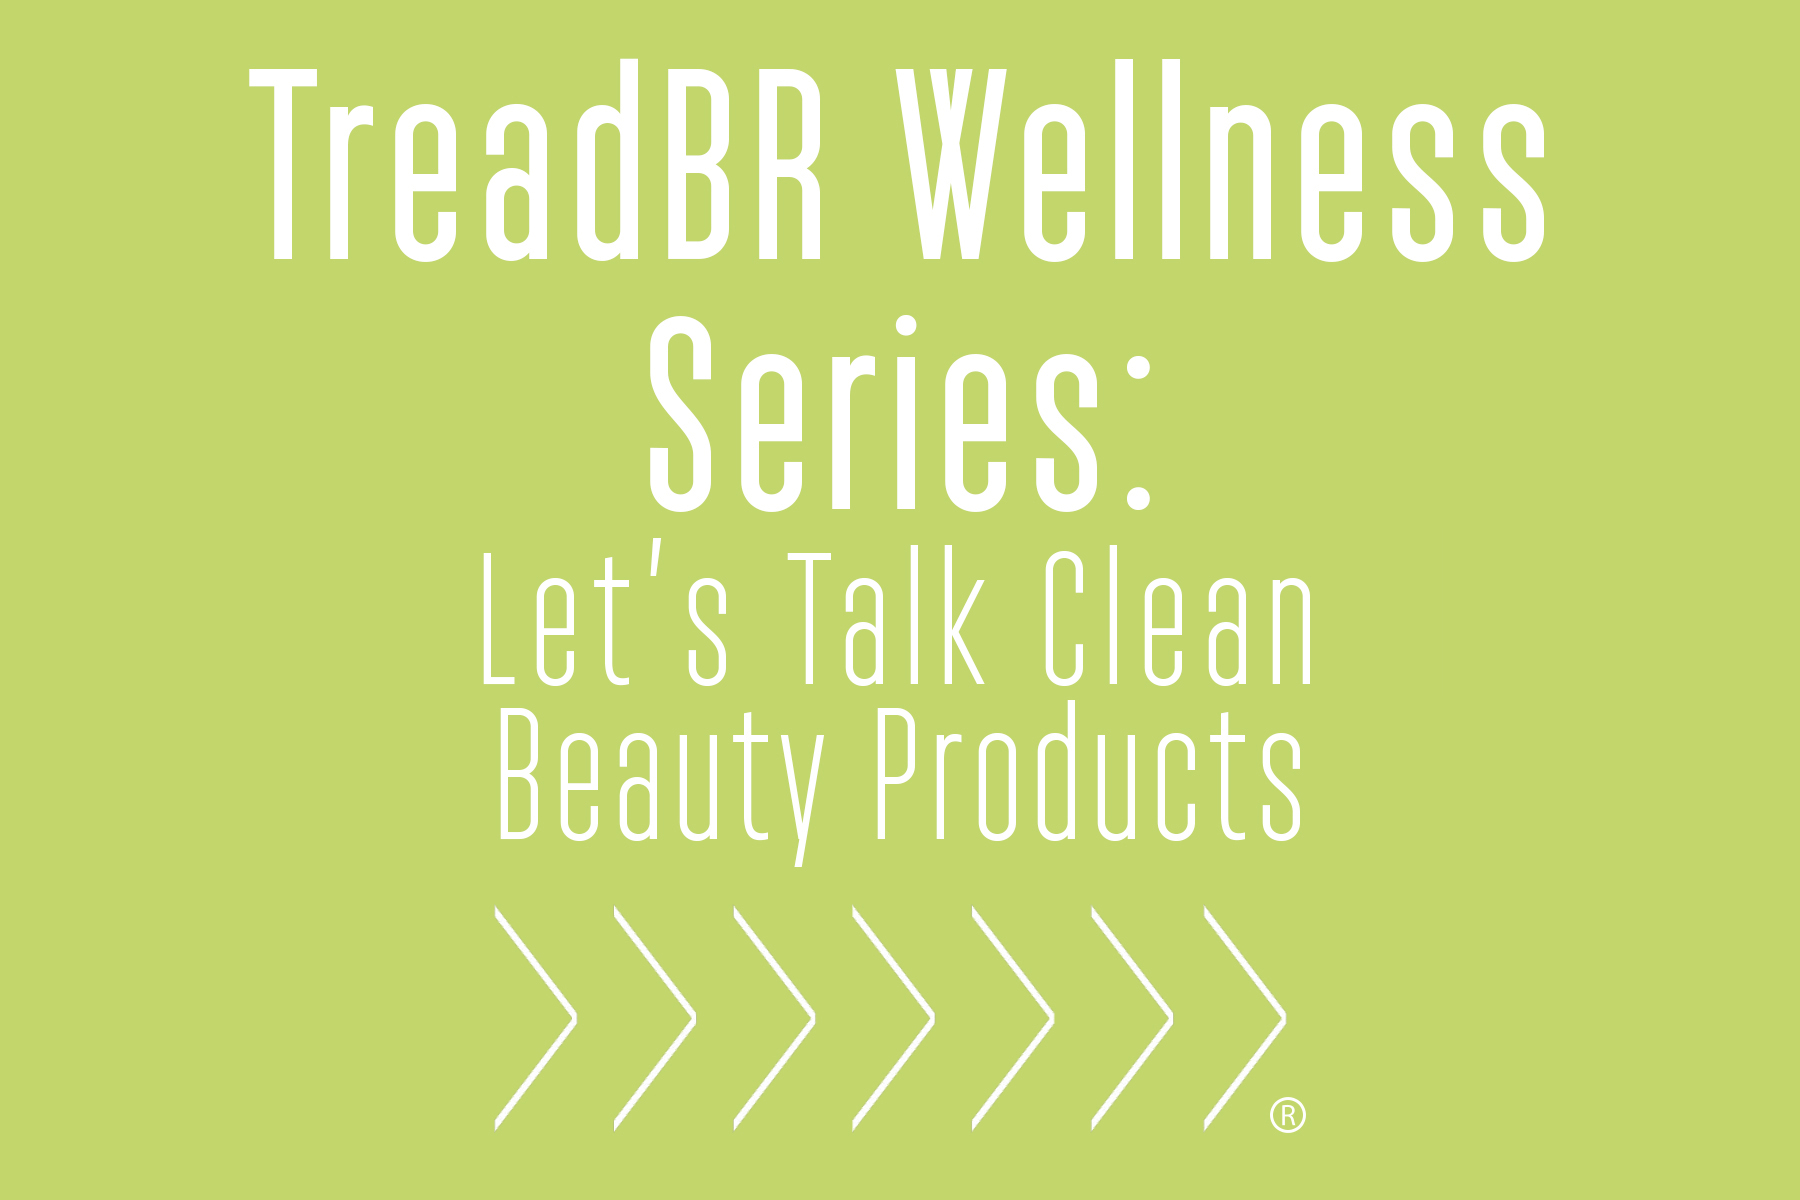 Let's get serious about the ingredients in our day-to-day beauty products! Join us on Monday, March 13 to talk about and sample some cleaner and safer options for our everyday routines.